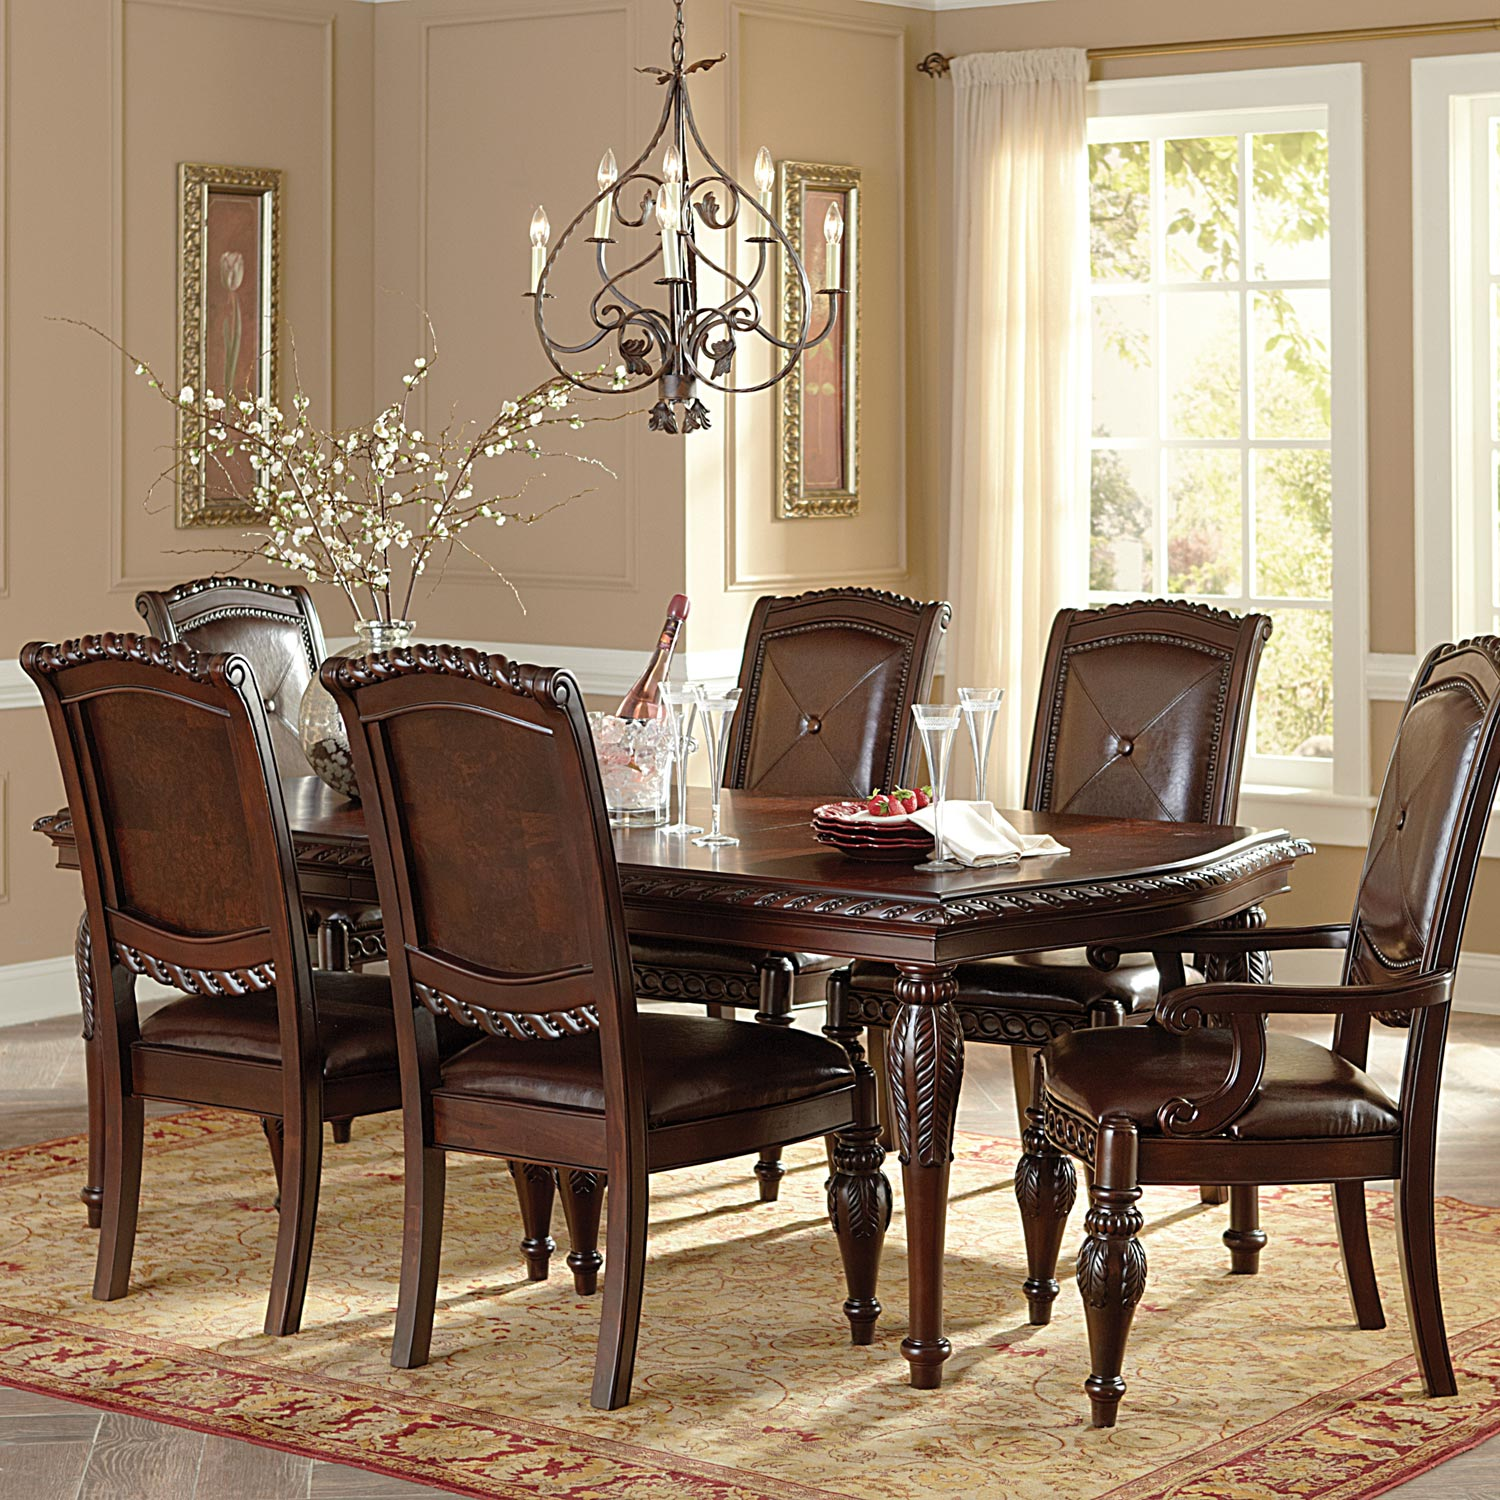 Antoinette 7 Piece Dining Set - Extending Table, Cherry Finish